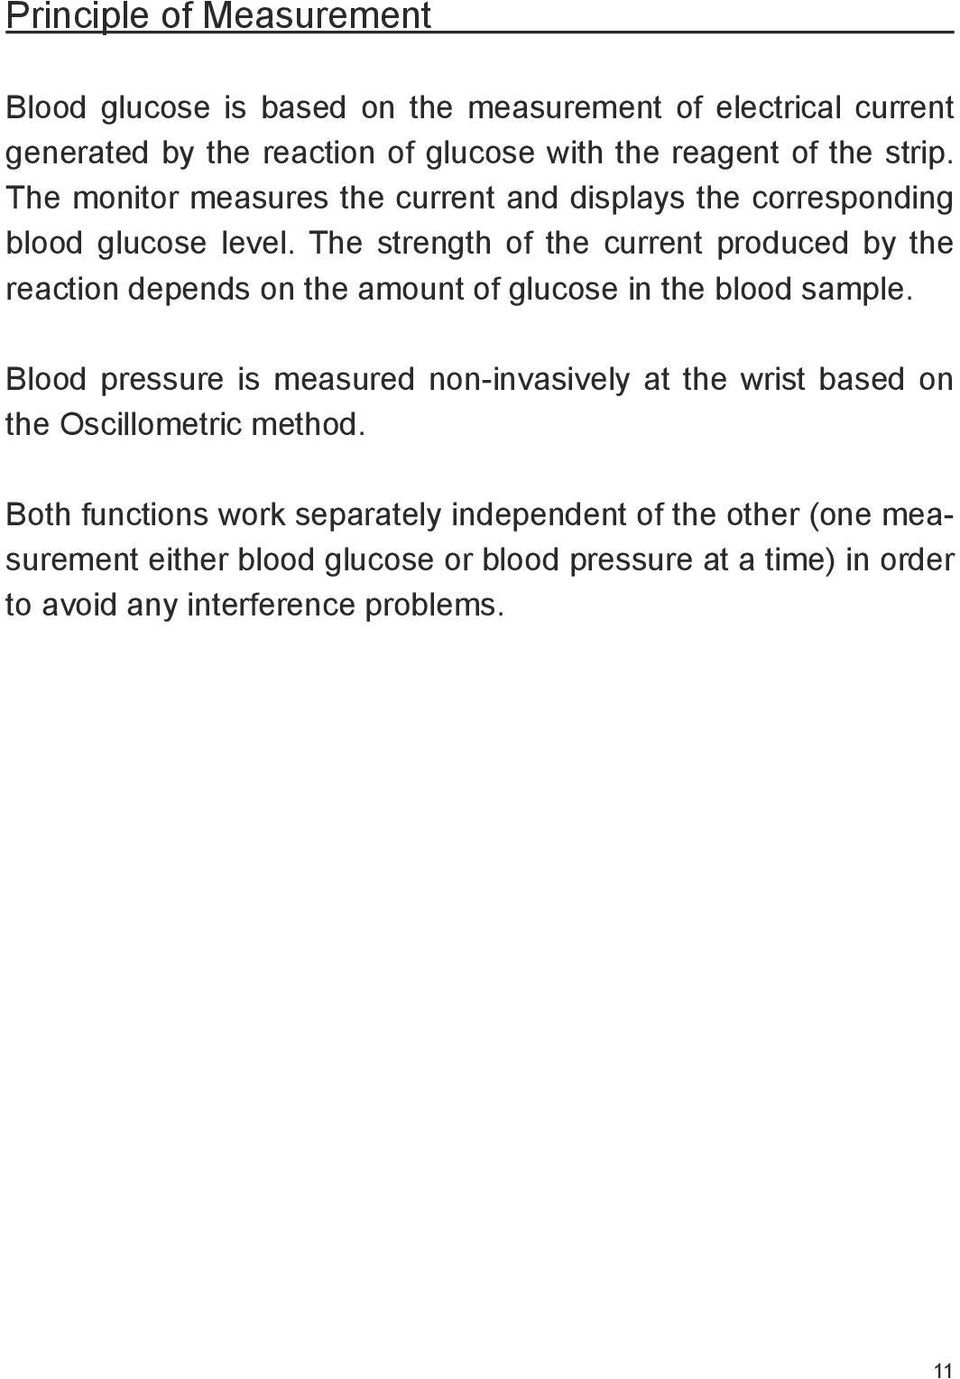 The strength of the current produced by the reaction depends on the amount of glucose in the blood sample.